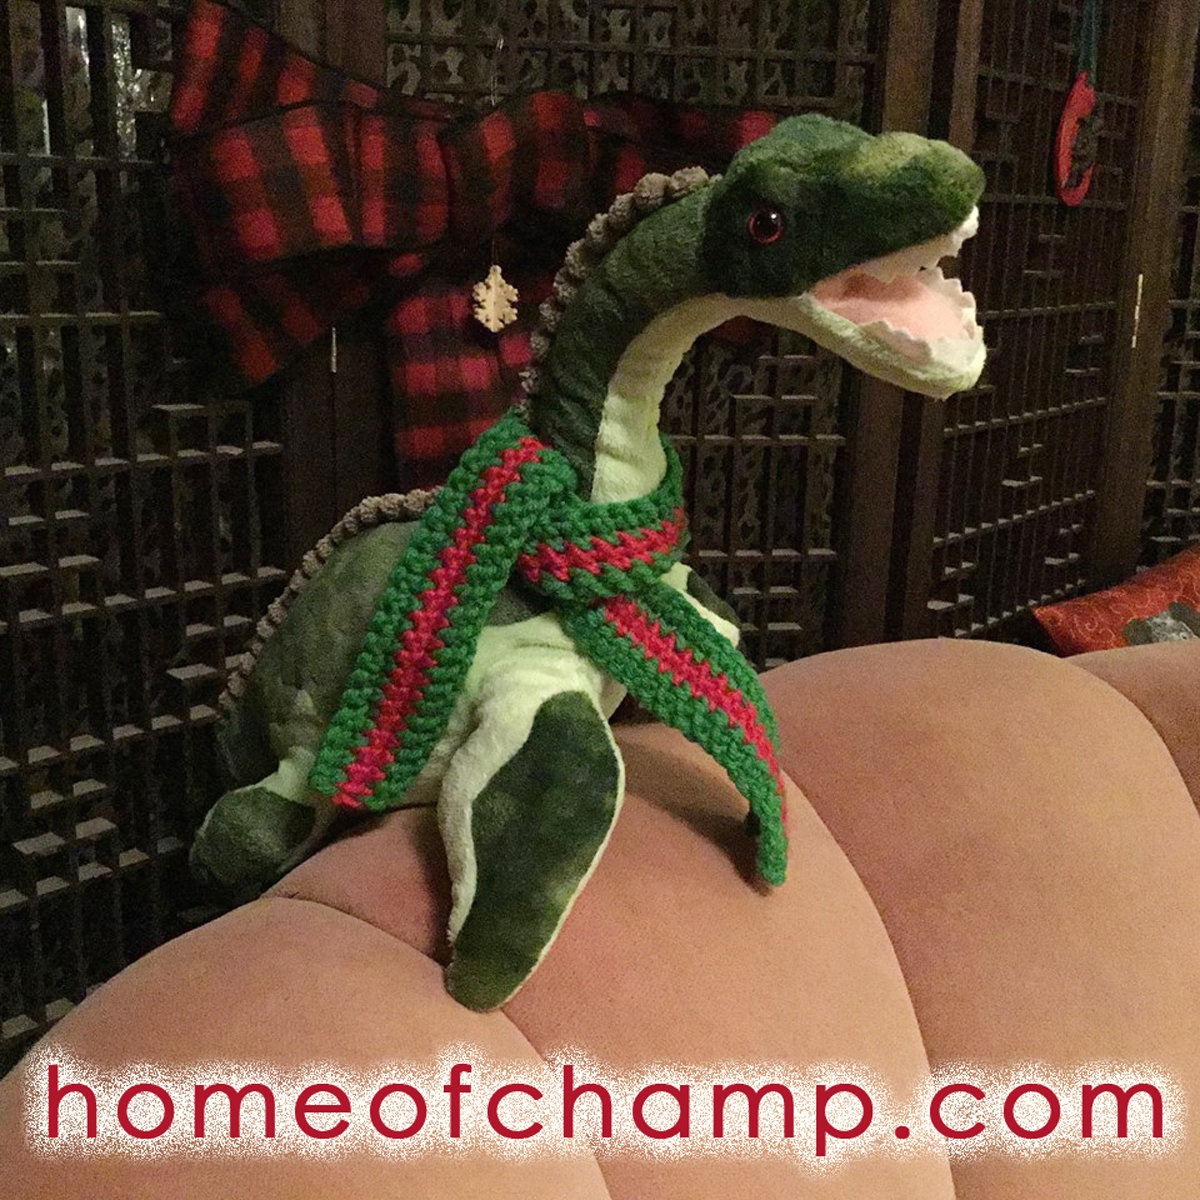 Plush Champ with Scarf